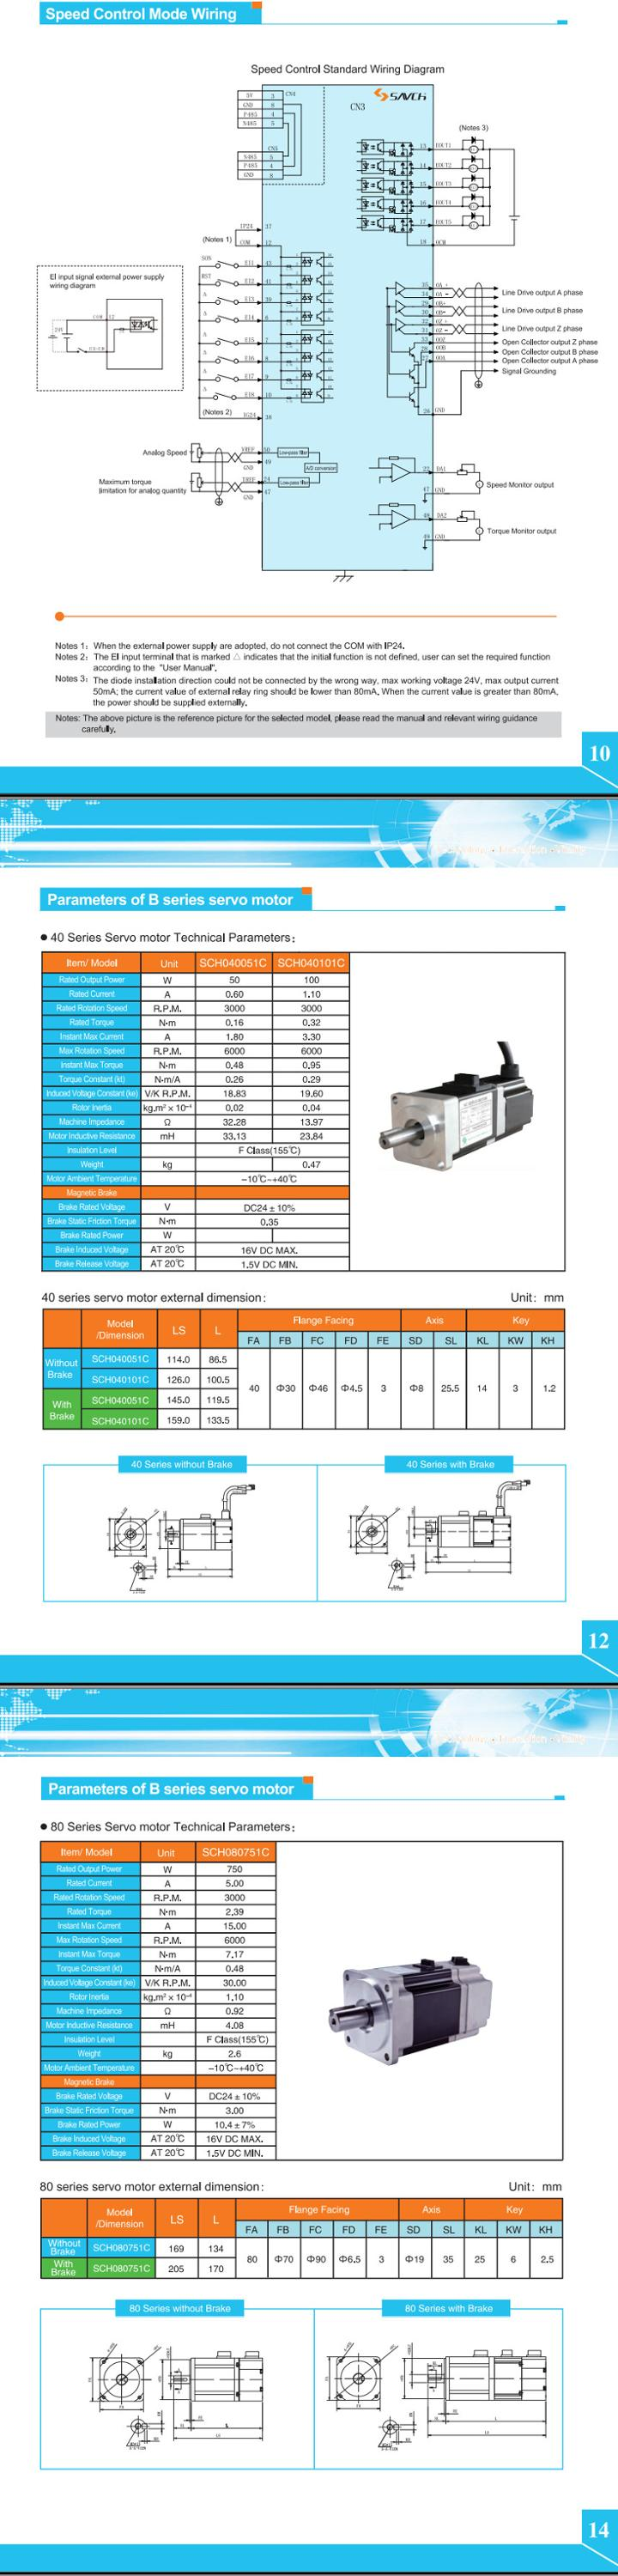 Sanch high position new performance 0.4kw~4.5kw single/three phase 220v/380v ac servo motor for ac servo drive